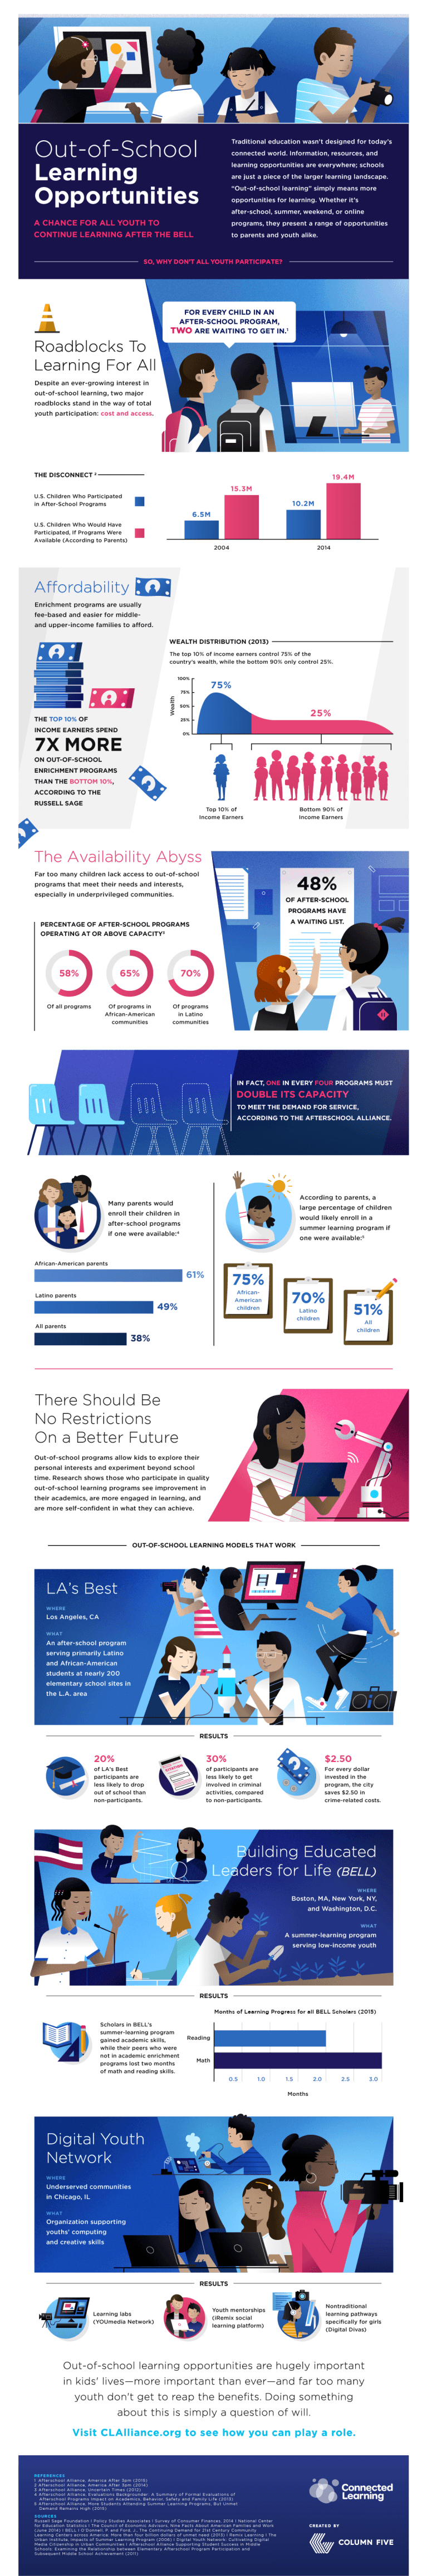 Educational Equity and Out-of-School Learning Infographic